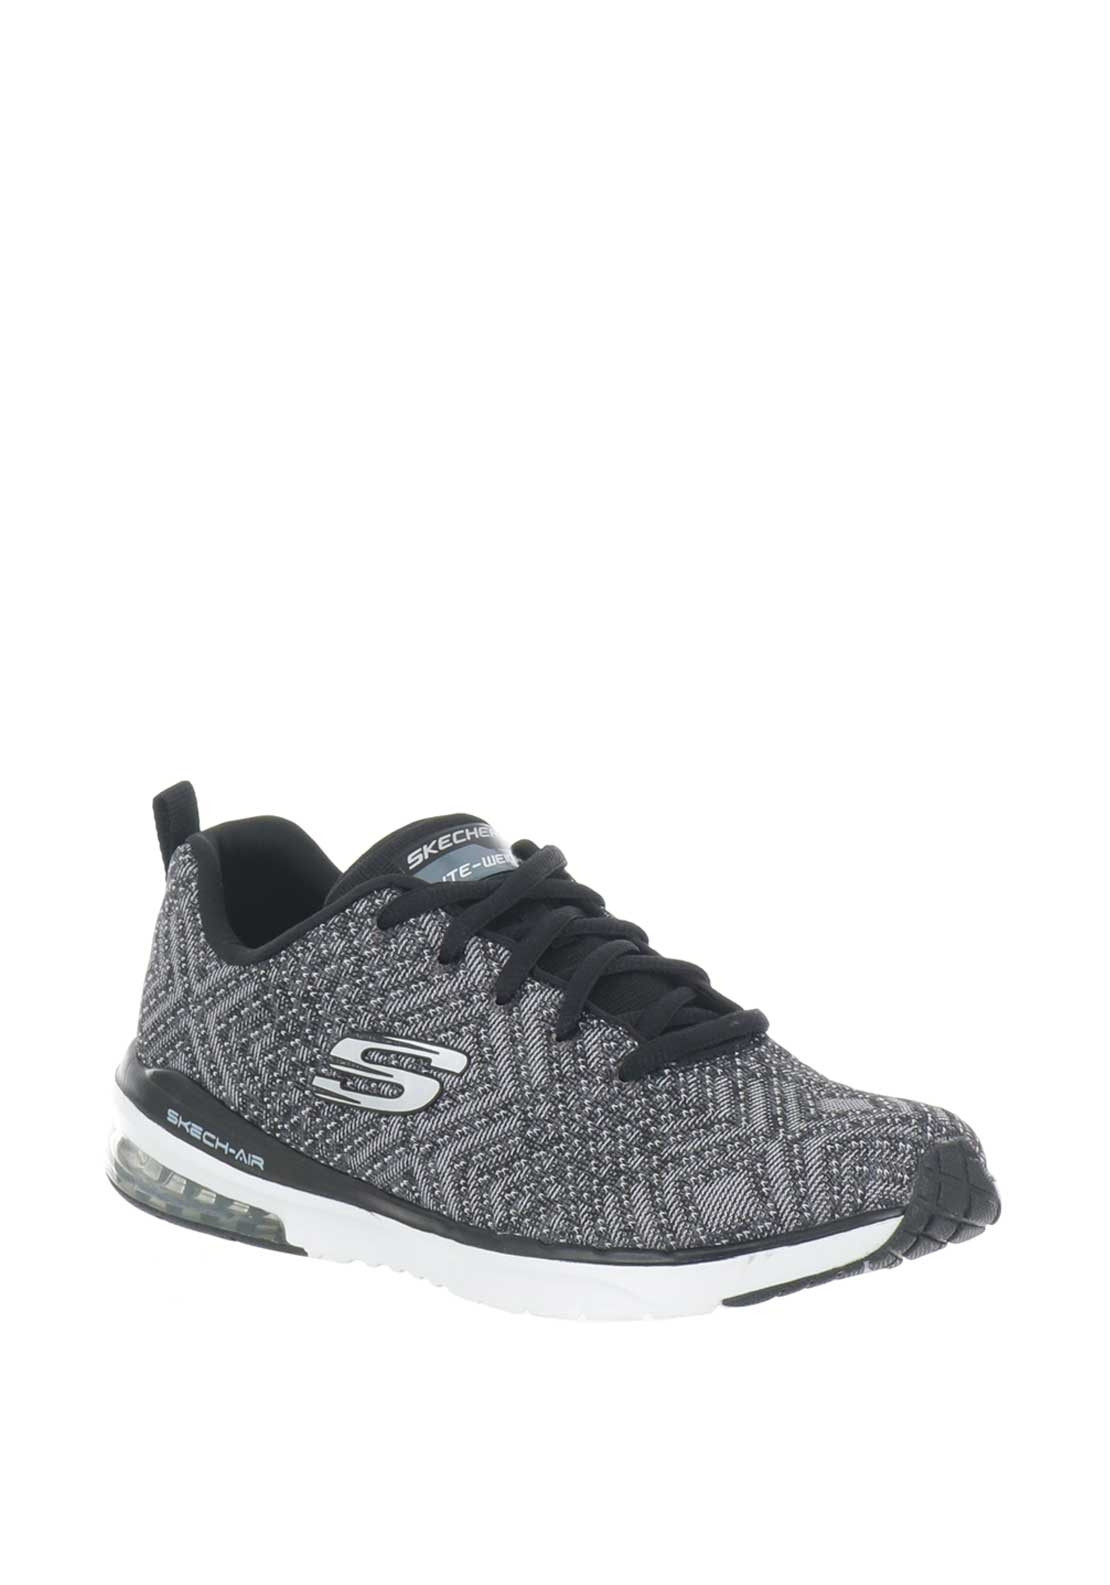 985321a6f4 Skechers Womens Knit Lite-Weight Trainers